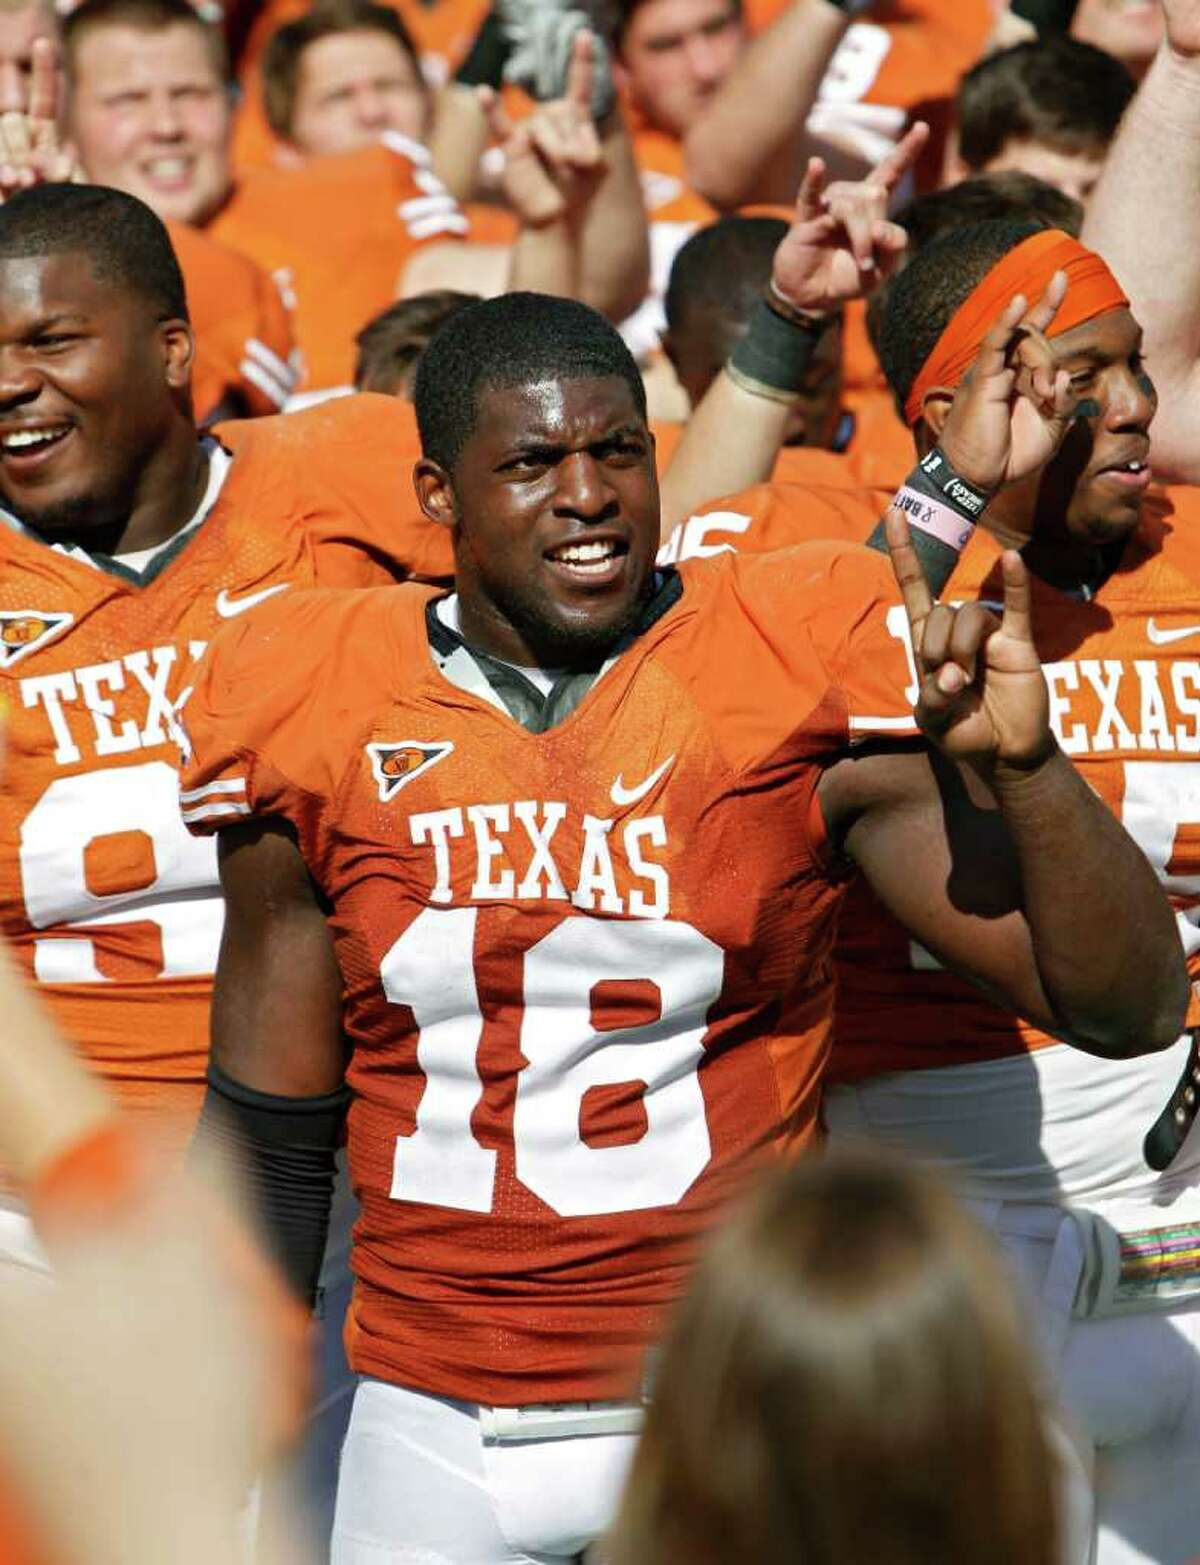 Texas linebacker Emmanuel Acho believes he can make a splash in the NFL as a rookie just like his big brother, Sam Acho.